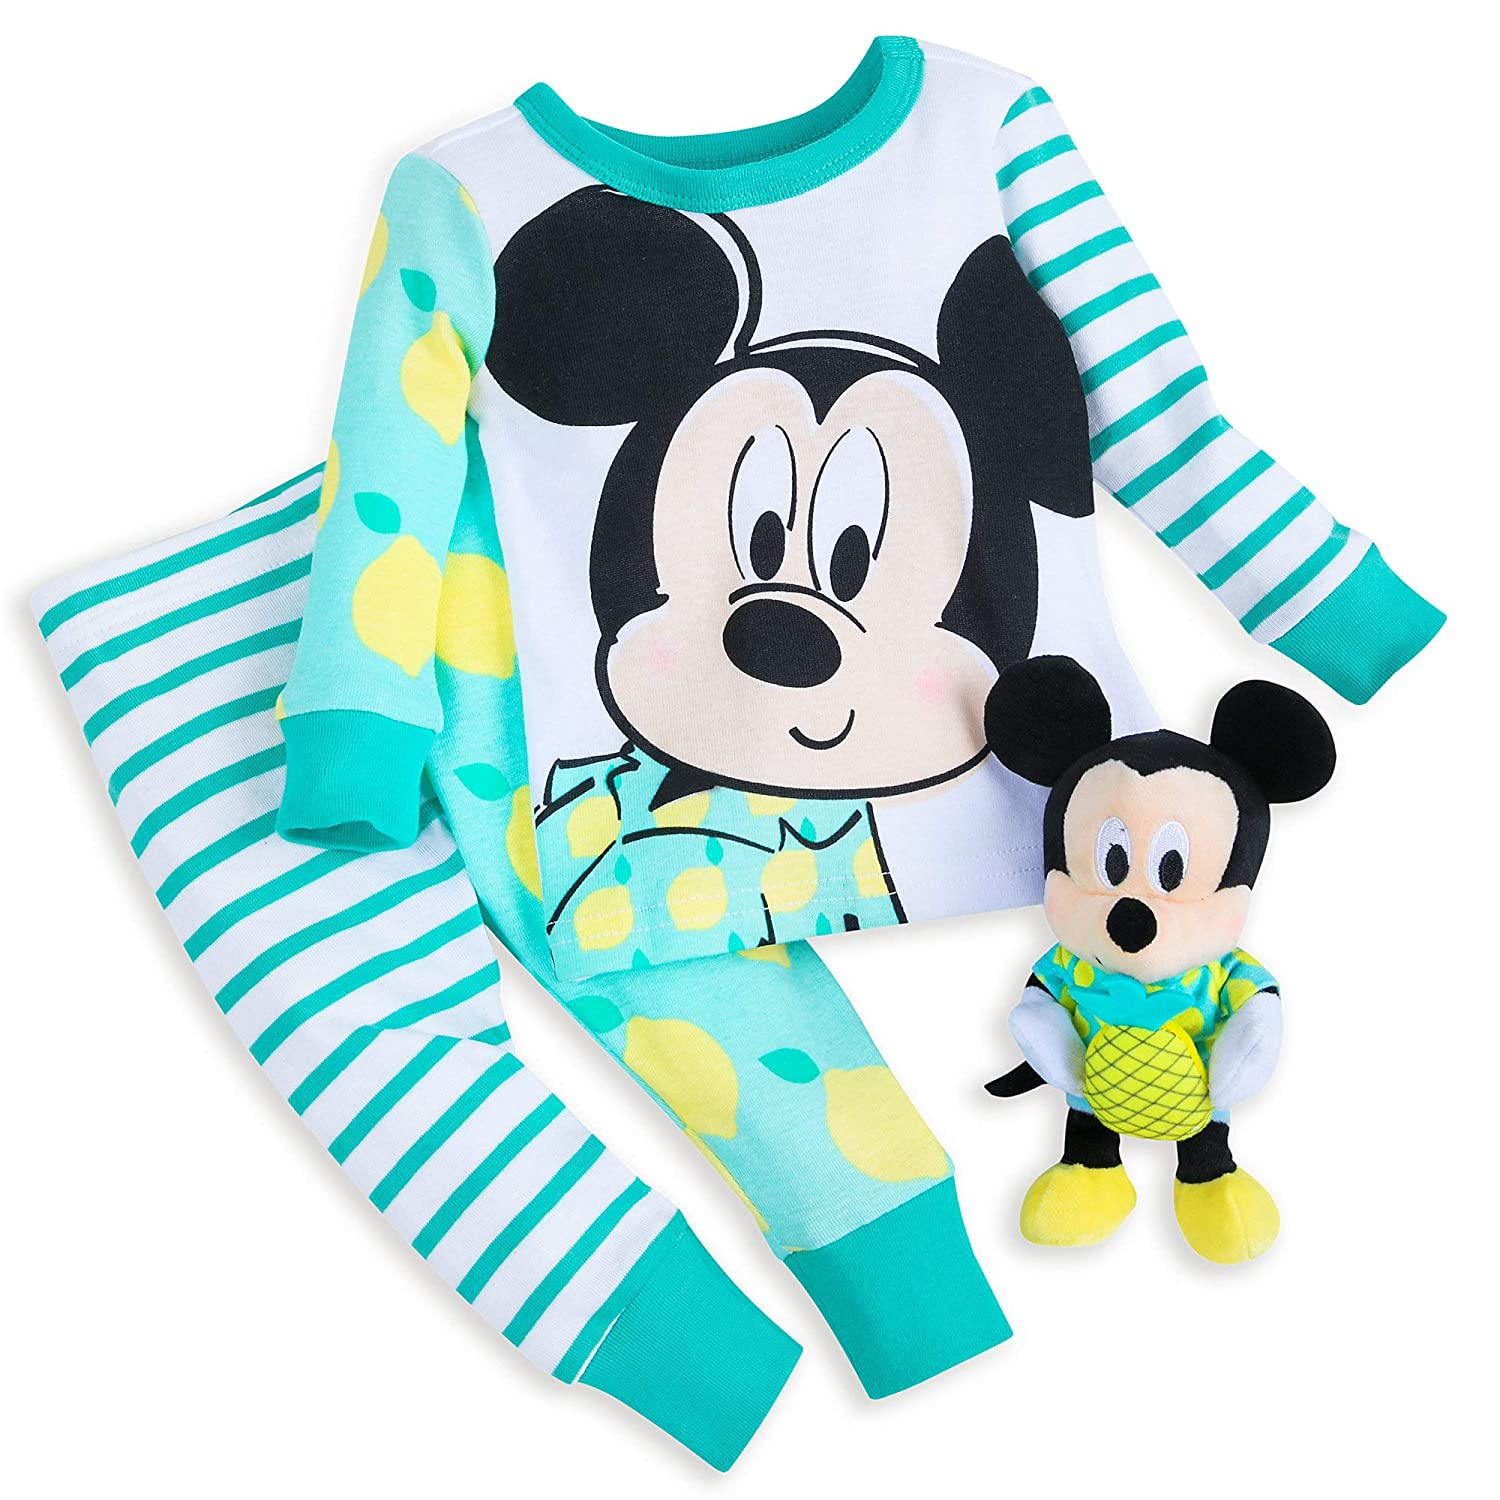 Disney Mickey Mouse PJ PALS and Plush Rattle Set for Baby Size 12-18 MO Multi